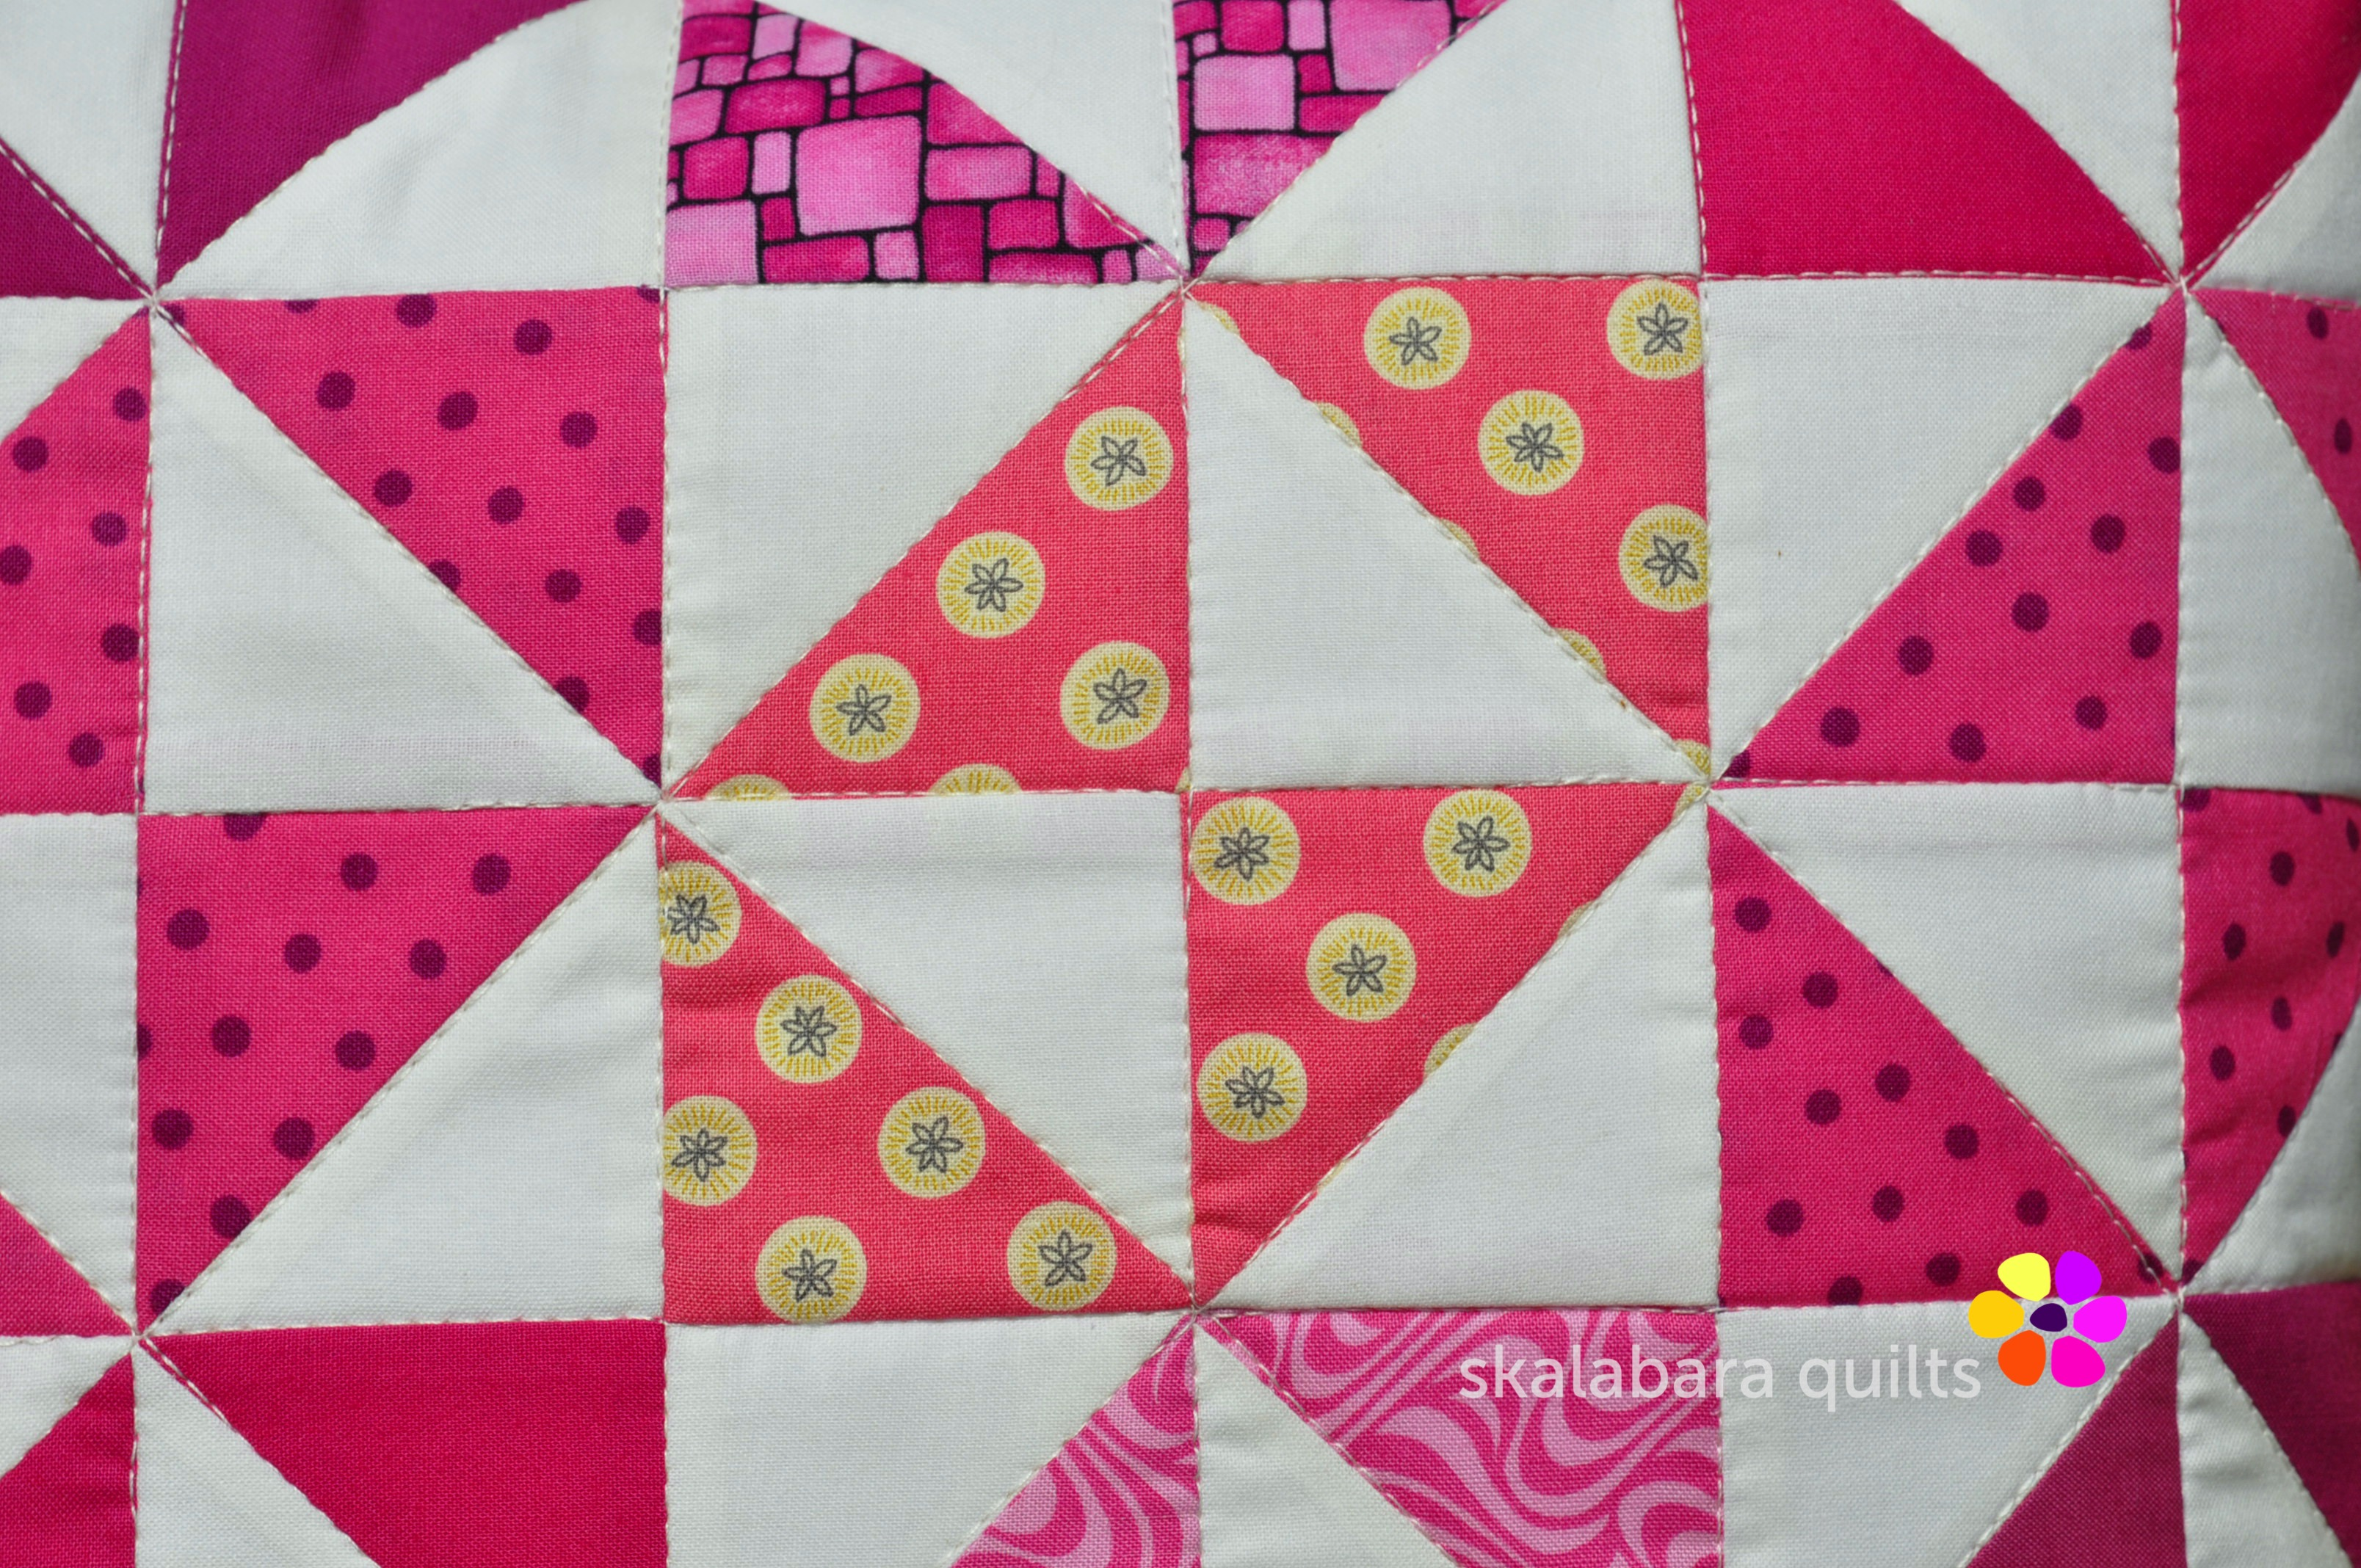 cushion covers broken dishes in pink detail 1 - skalabara quilts